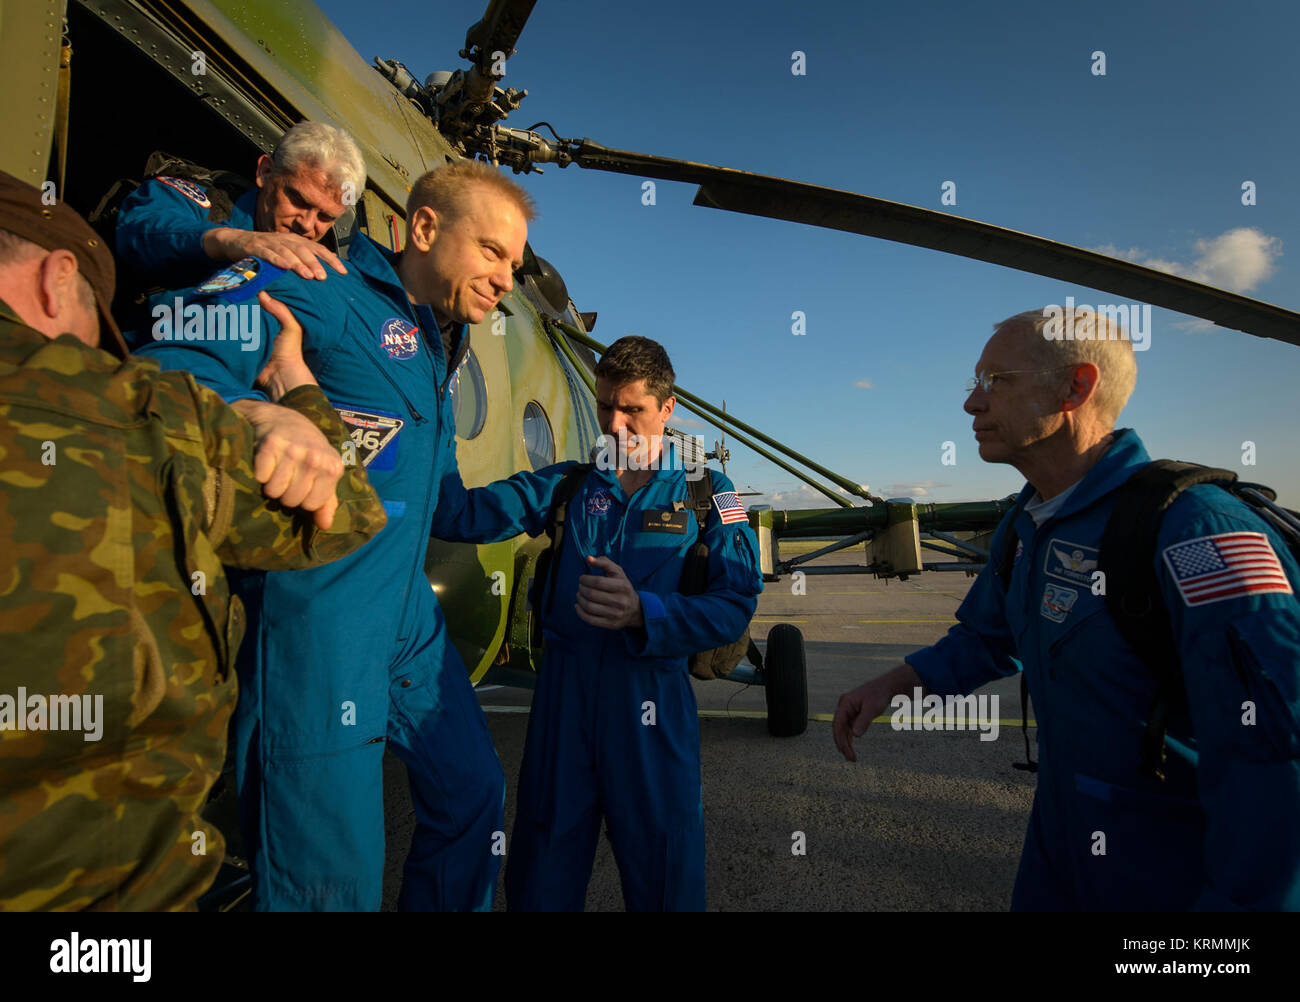 Expedition 47 astronaut Tim Kopra of NASA is helped from the helicopter that brought him to the Karaganda Airport - Stock Image